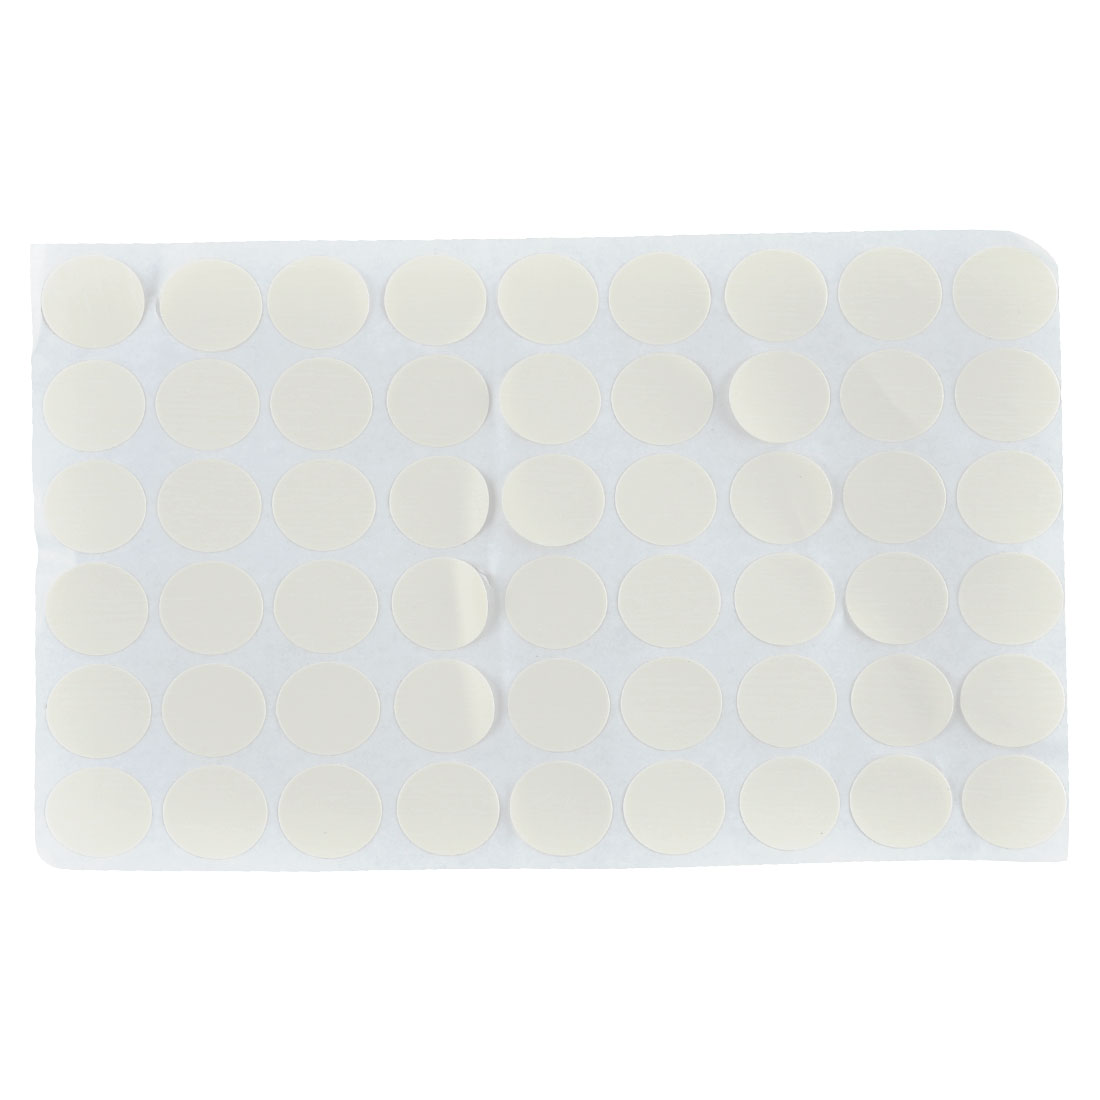 Home Office Furniture Self-adhesive Screw Hole Stickers Covers Sheet Beige 54 in 1